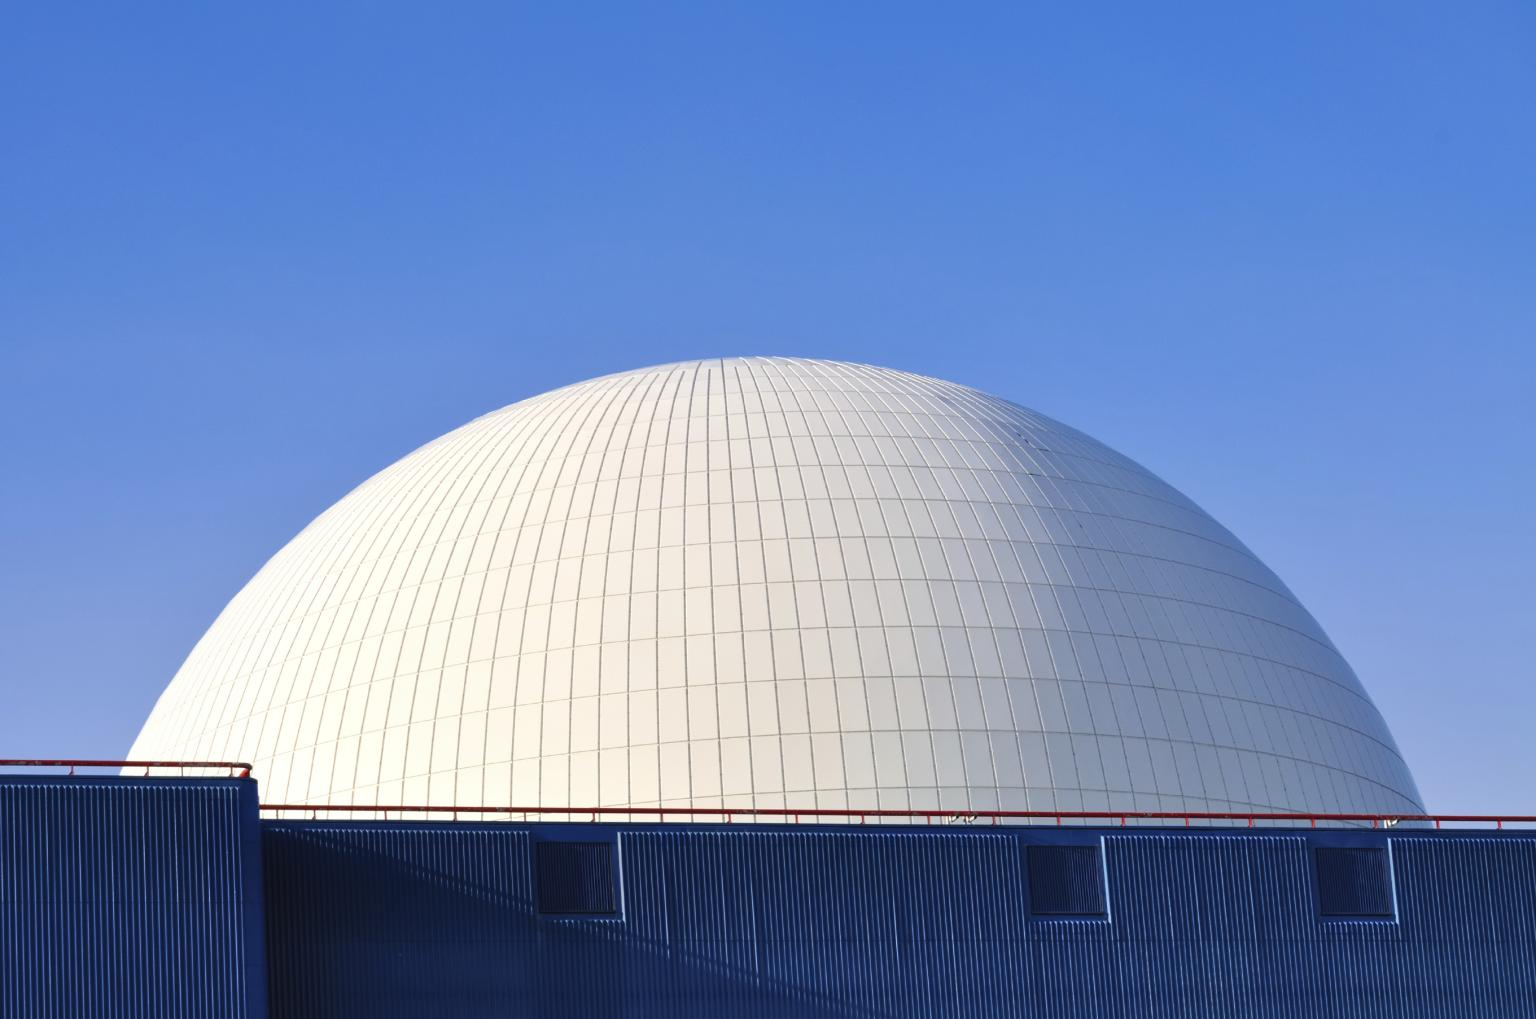 The ETI believes that new nuclear plants can be a key part of the UK's low carbon transition